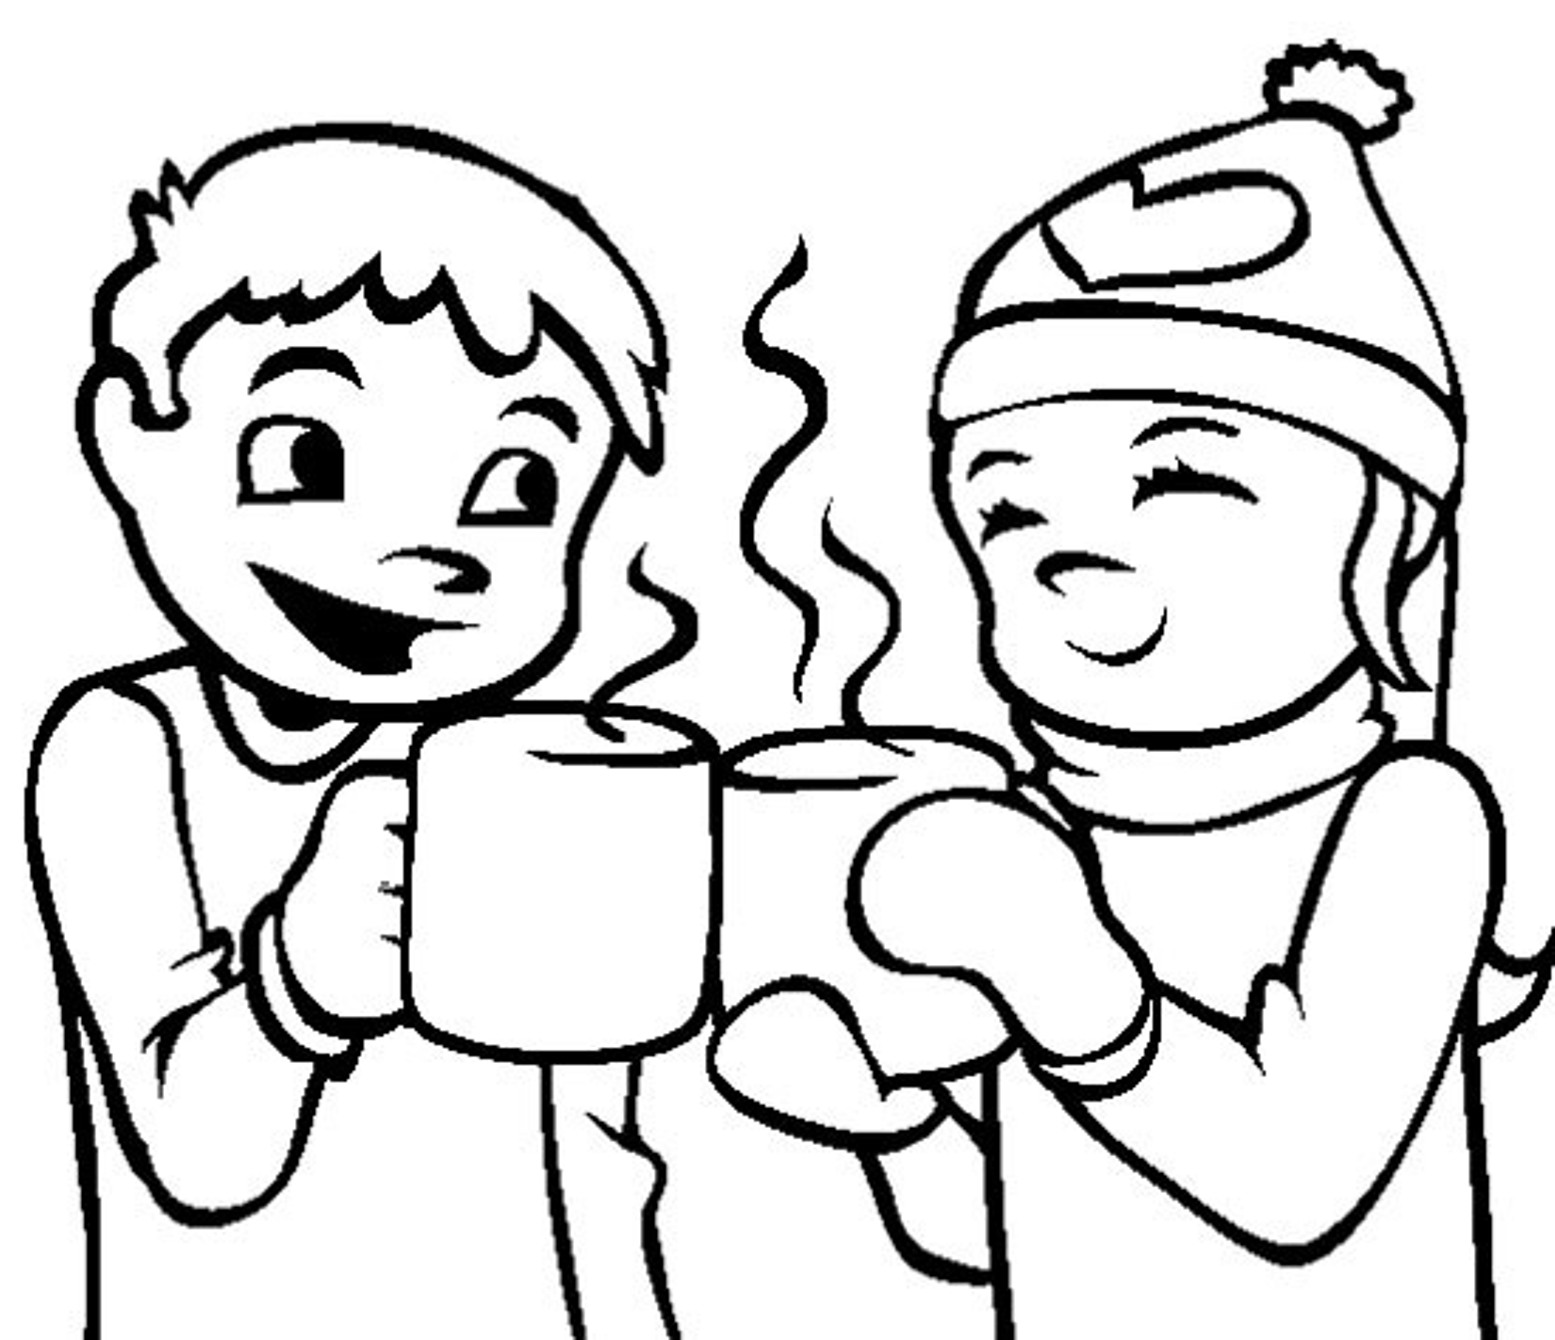 Hot Chocolate Coloring Page - Coloring Home